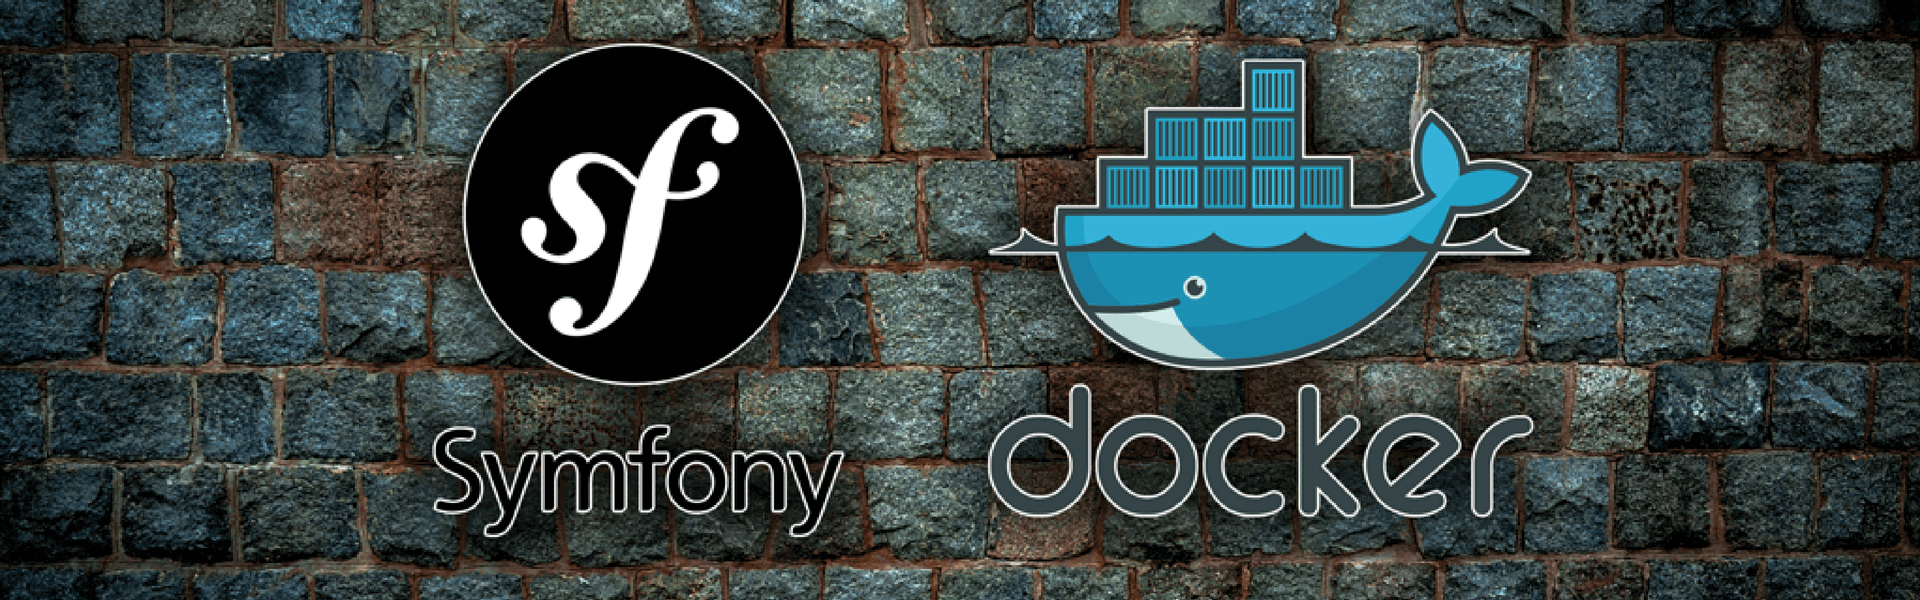 How to Set up a Symfony Project for Work with Docker Subdomains